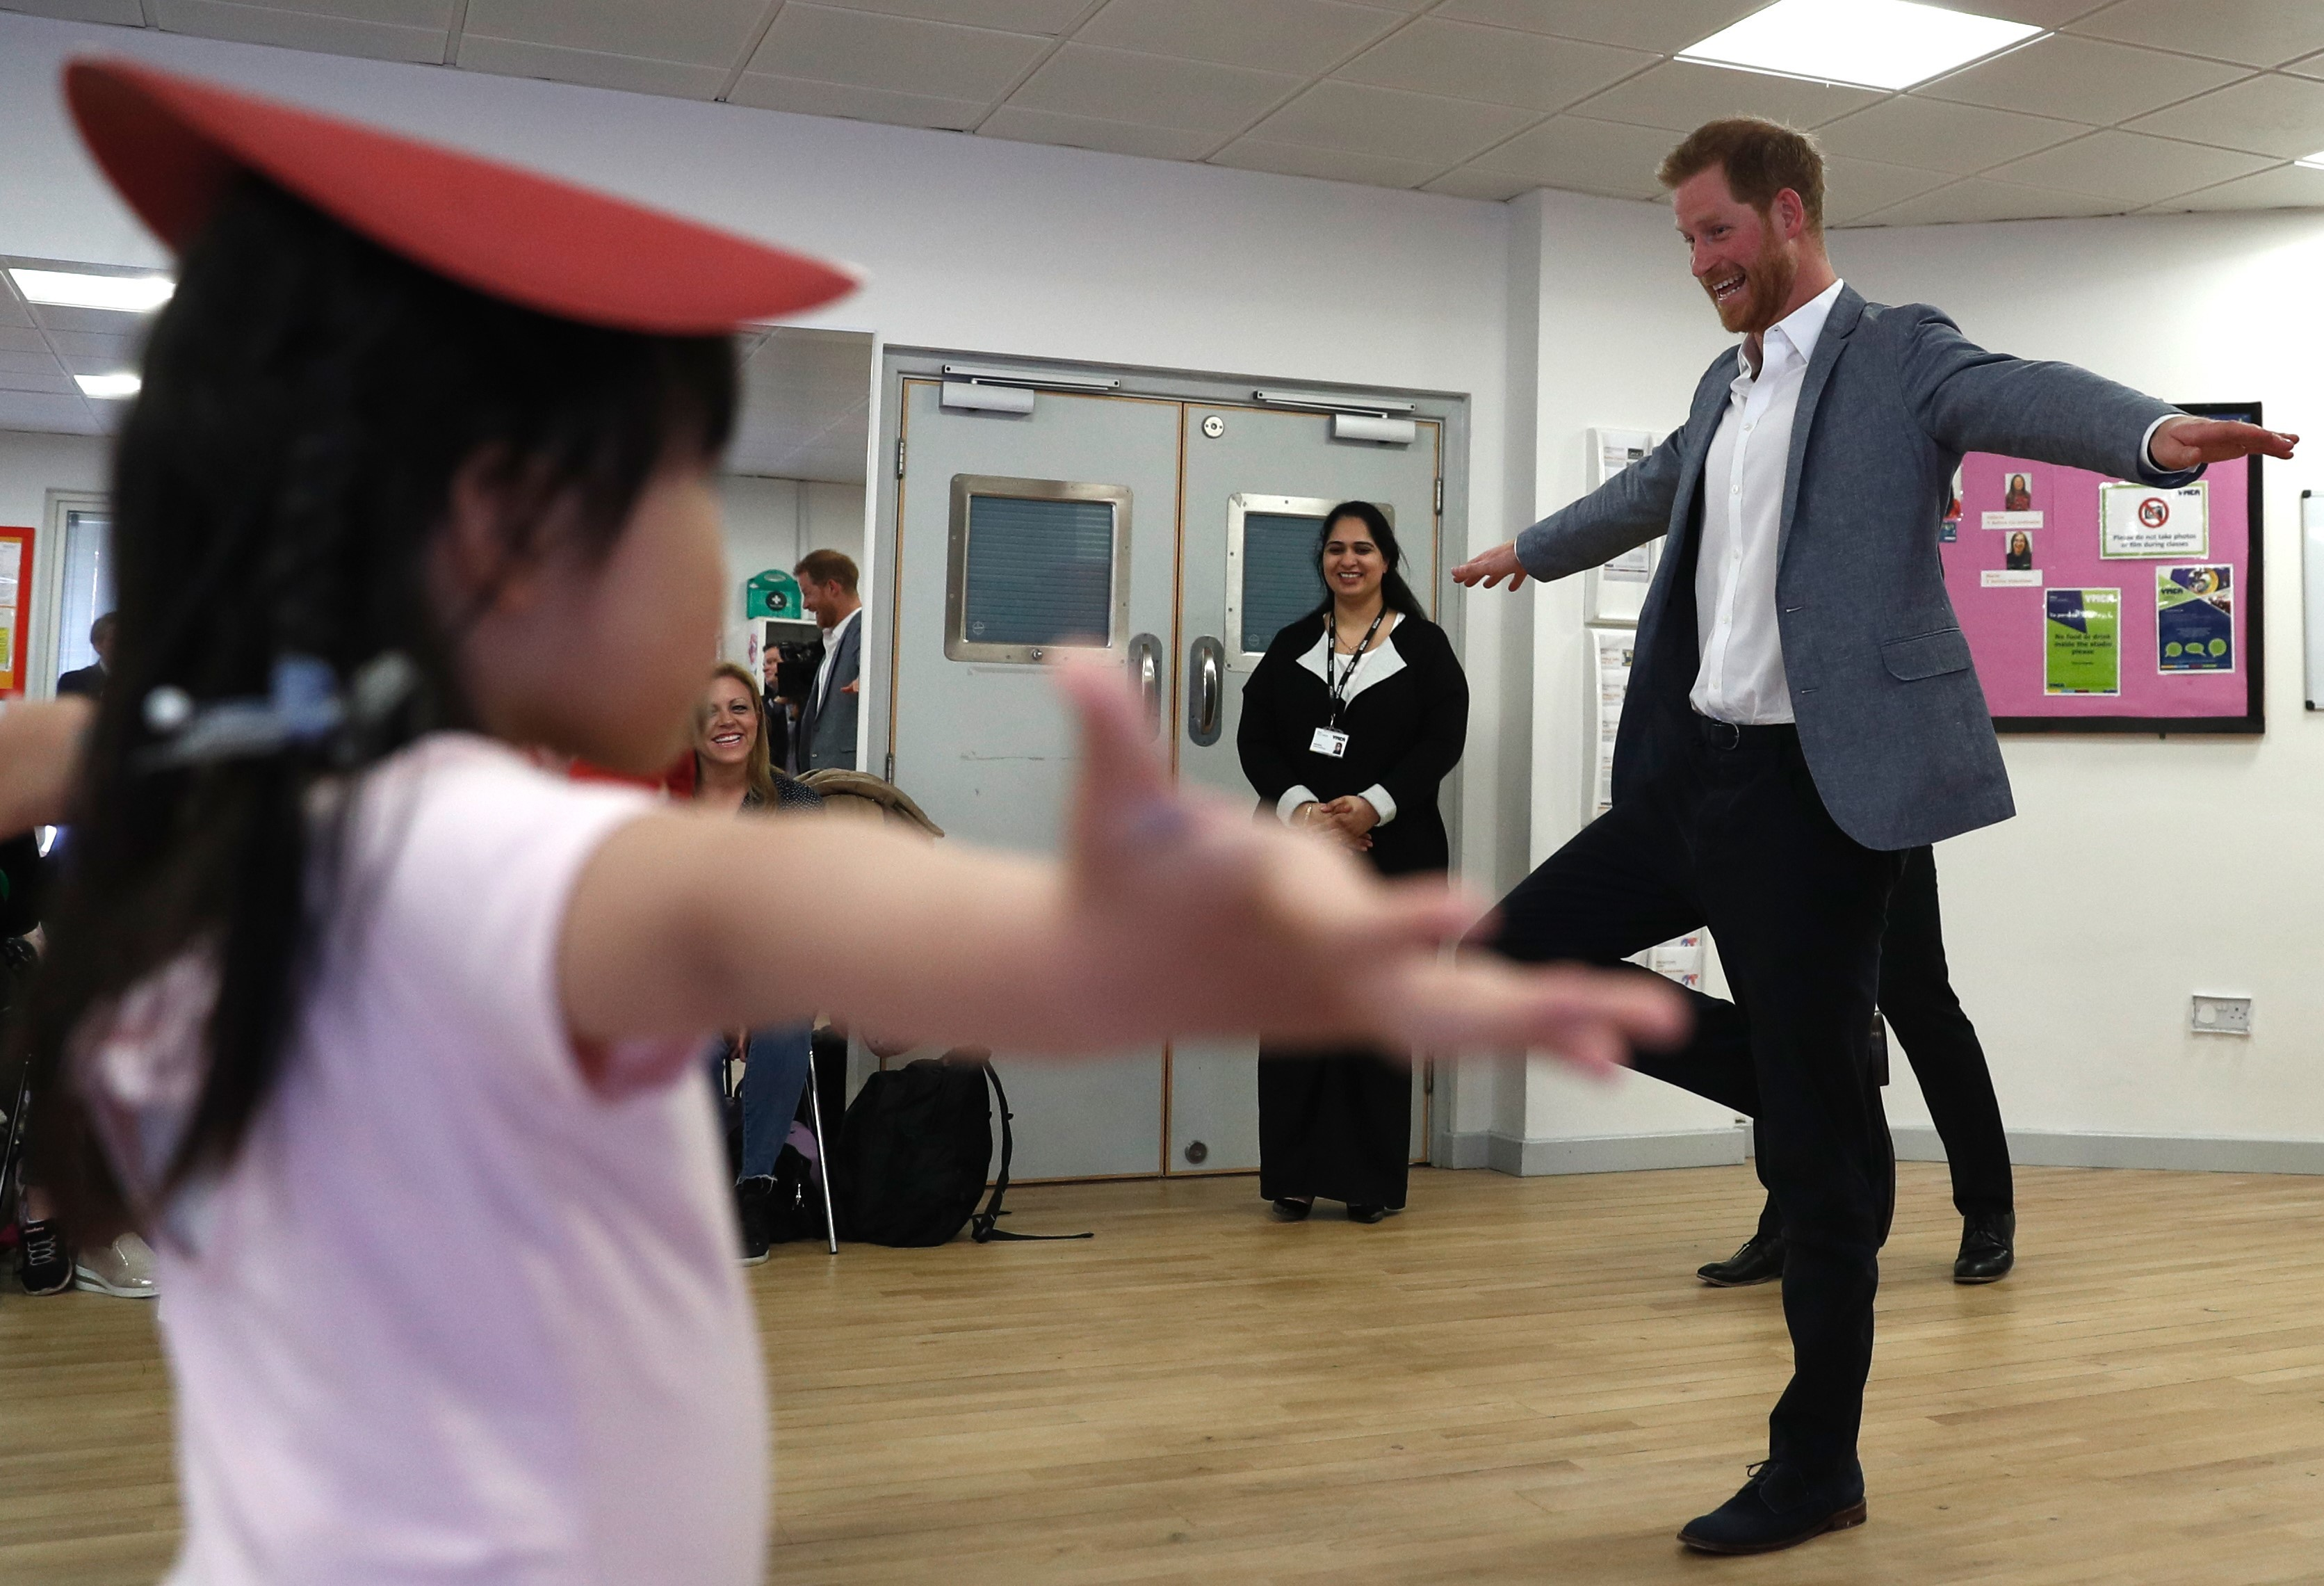 Prince Harry joins children taking part in ballet class at the YMCA in South Ealing, London on April 3, 2019.